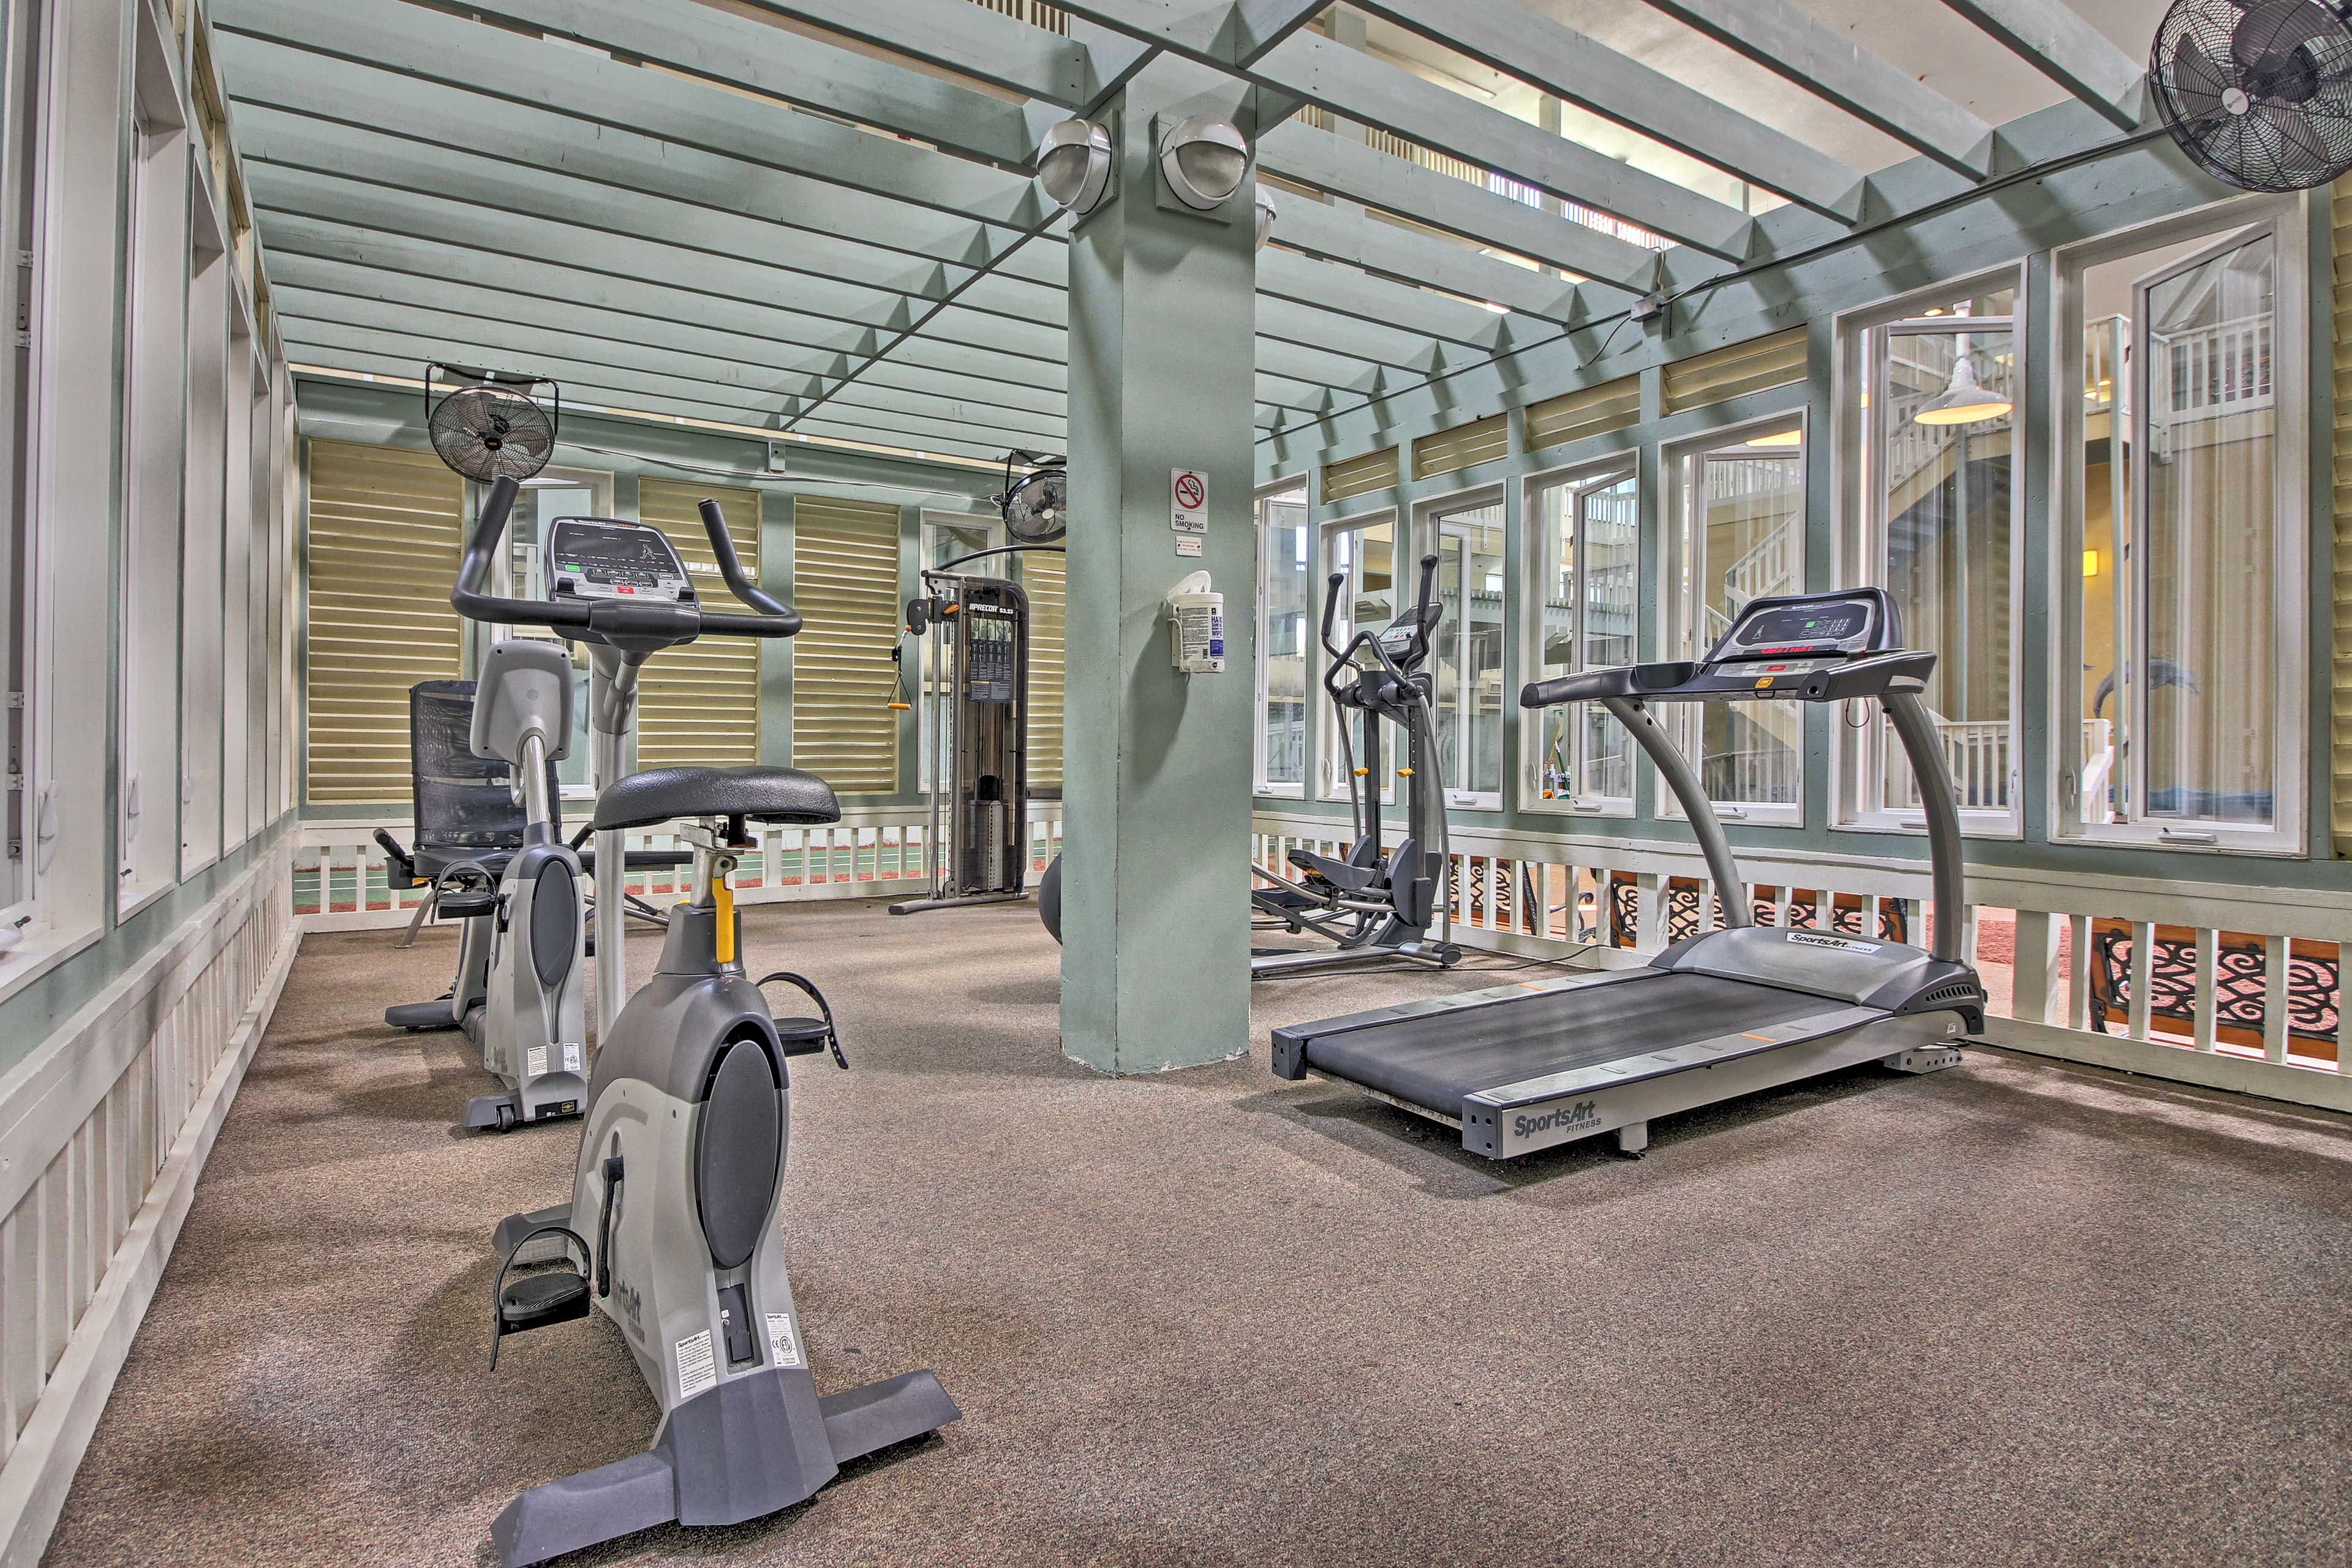 Work up a sweat in the fitness room!